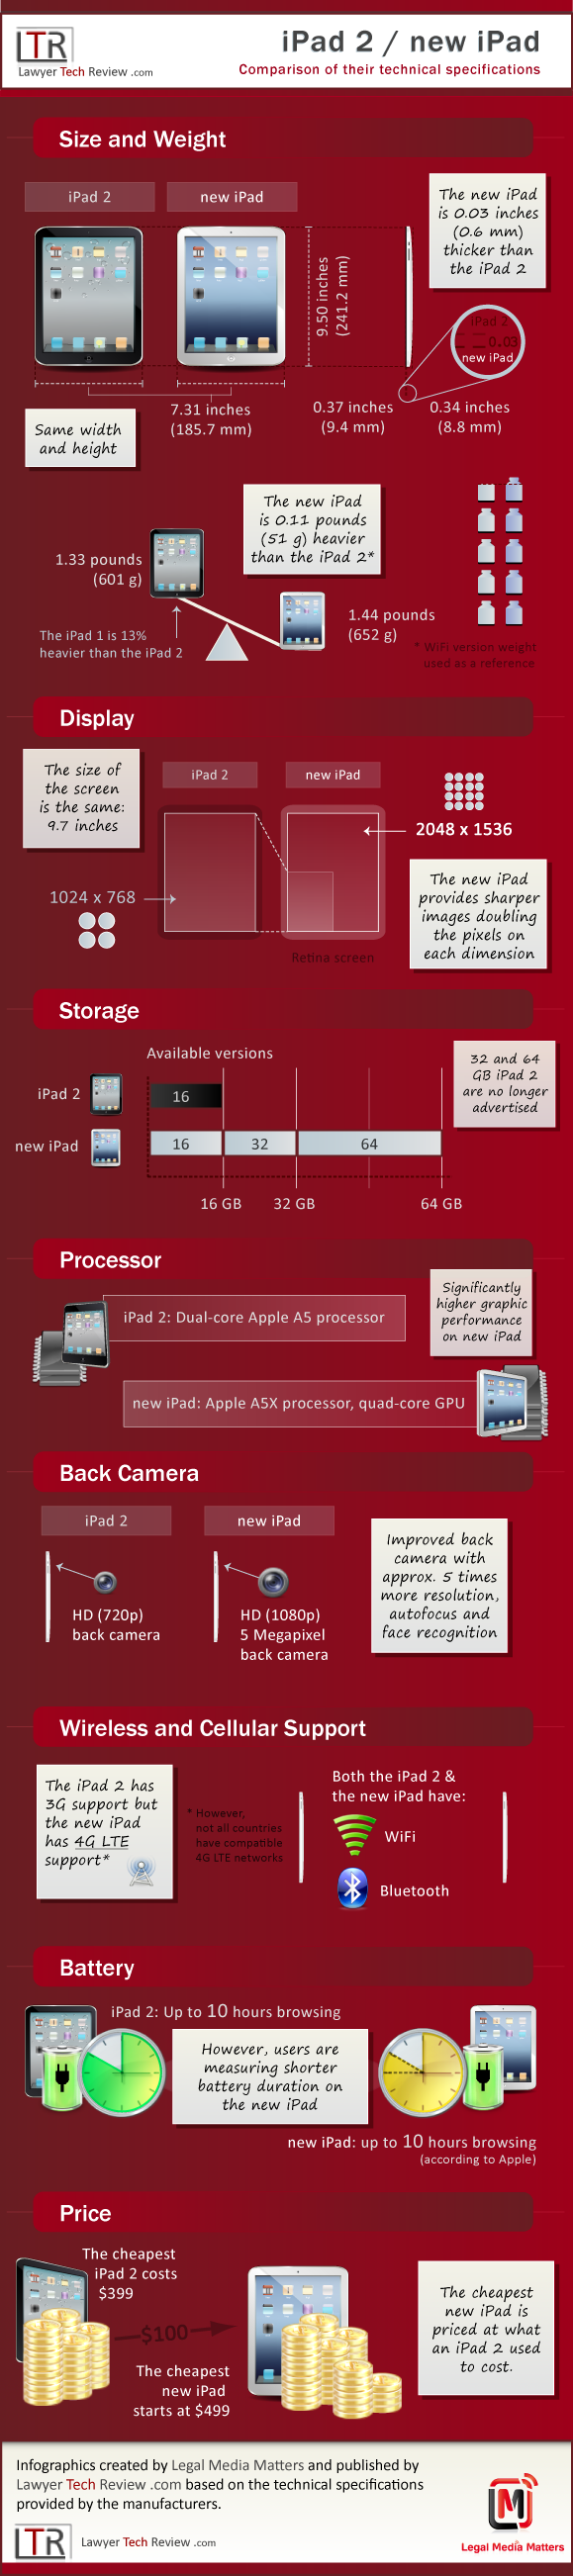 iPad-2-vs-new-iPad-3-comparison-infographic.png